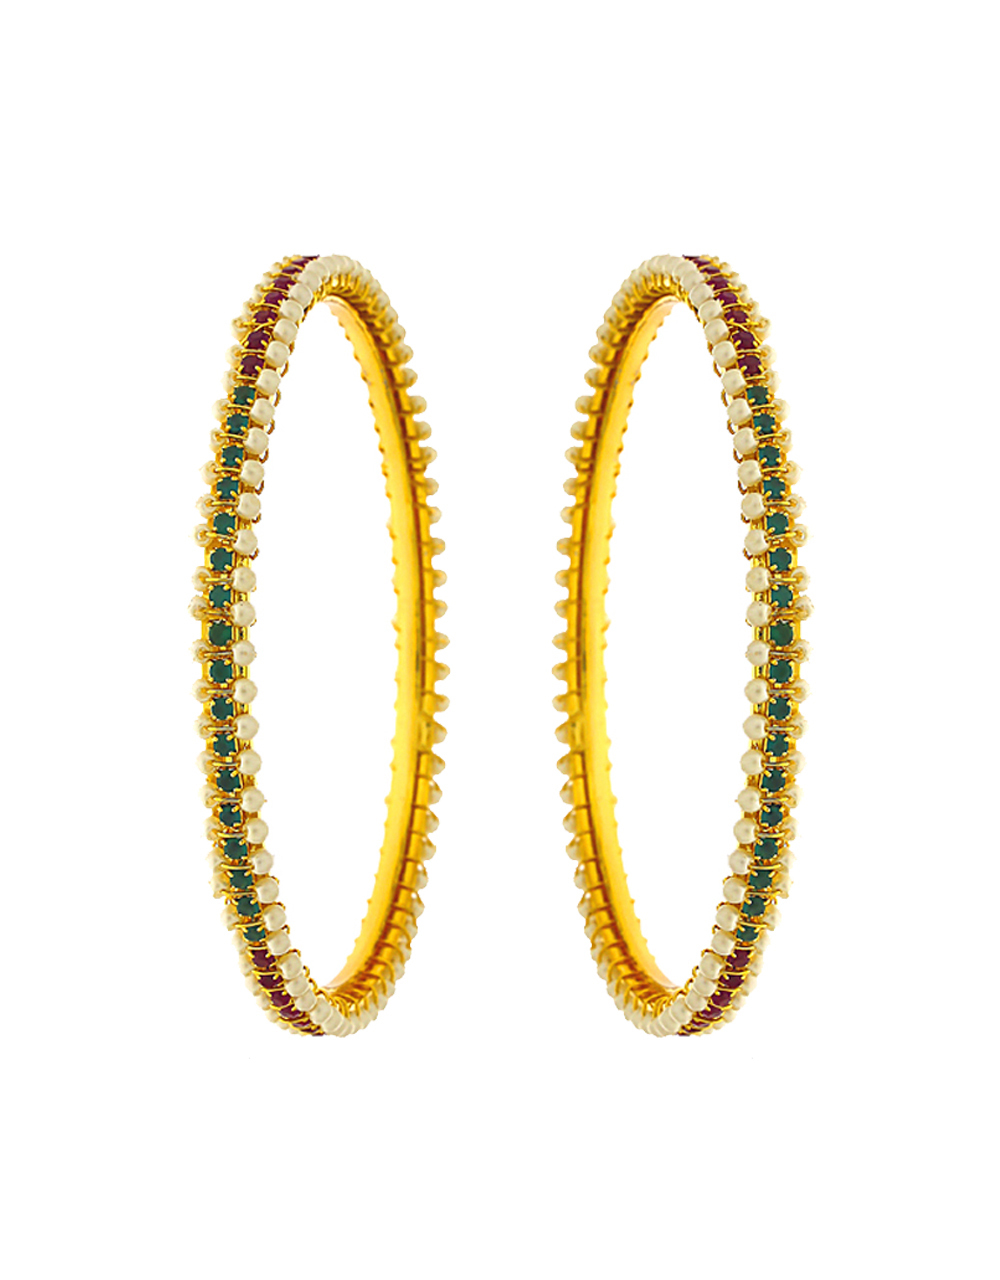 Adorable design decorated with pearl bangles for women